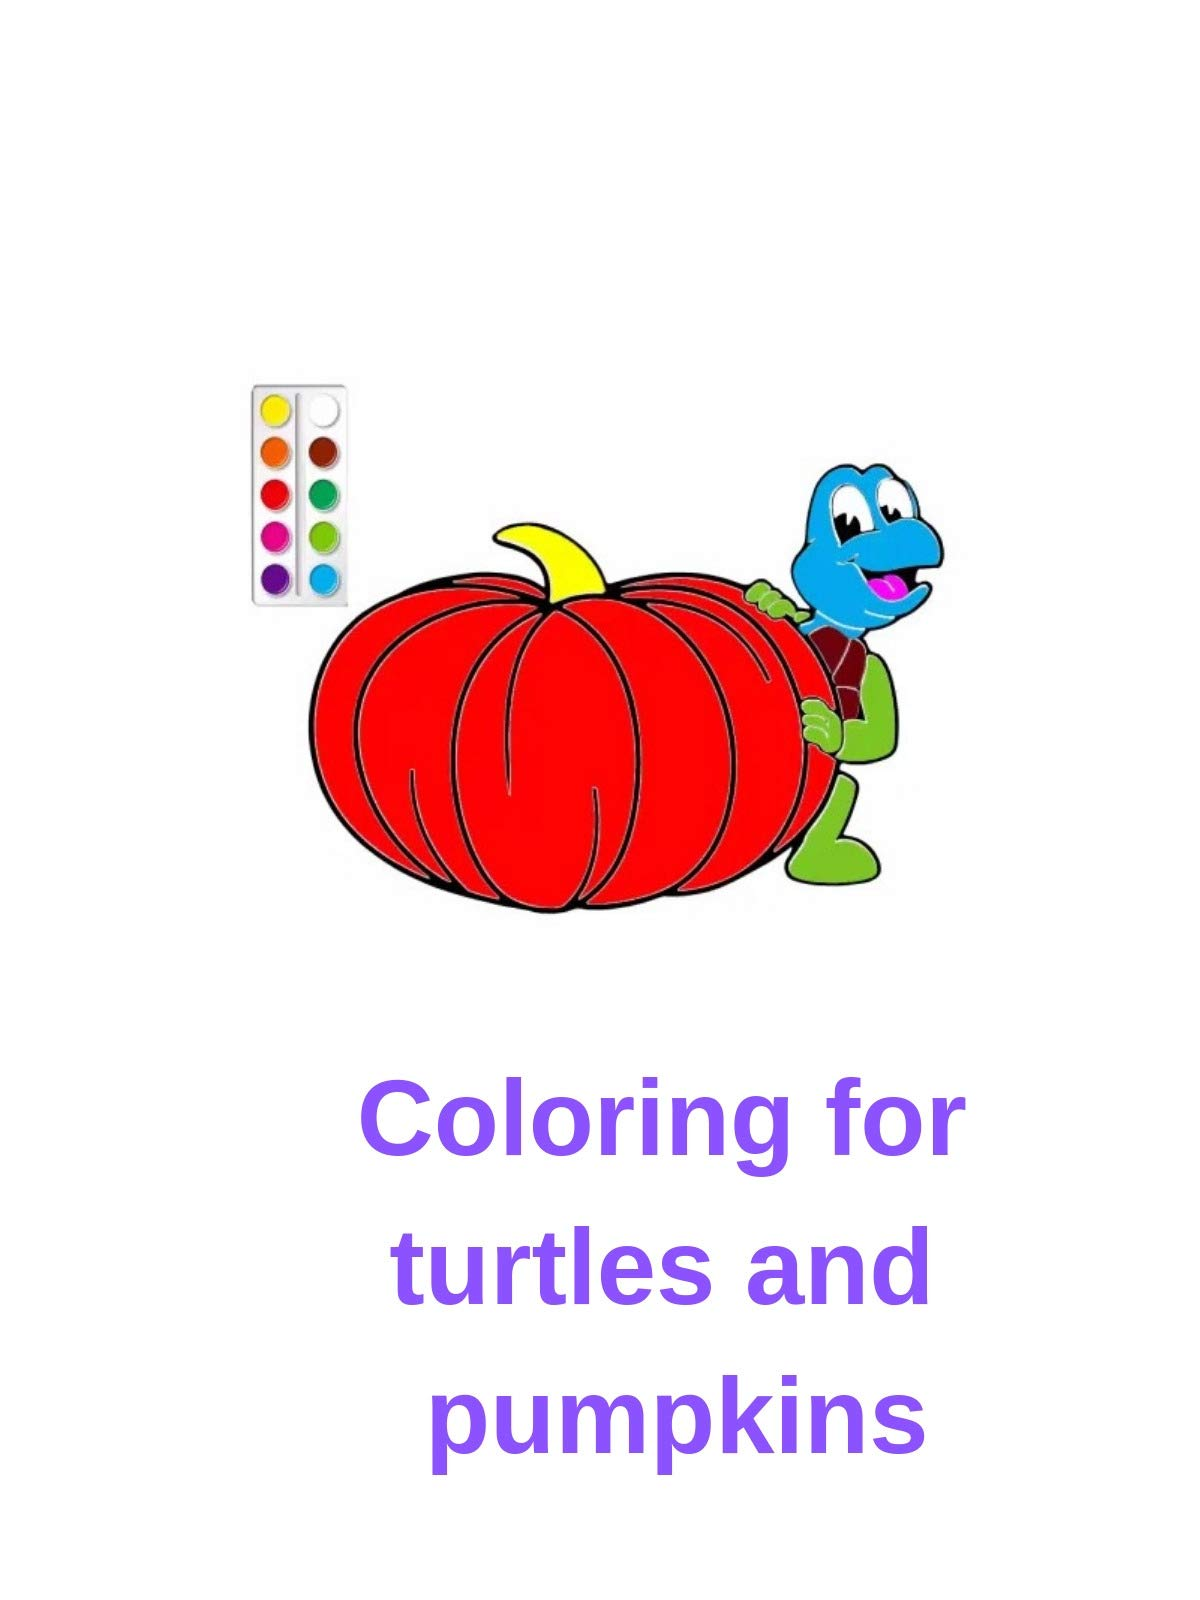 Clip: Coloring for turtles and pumpkins